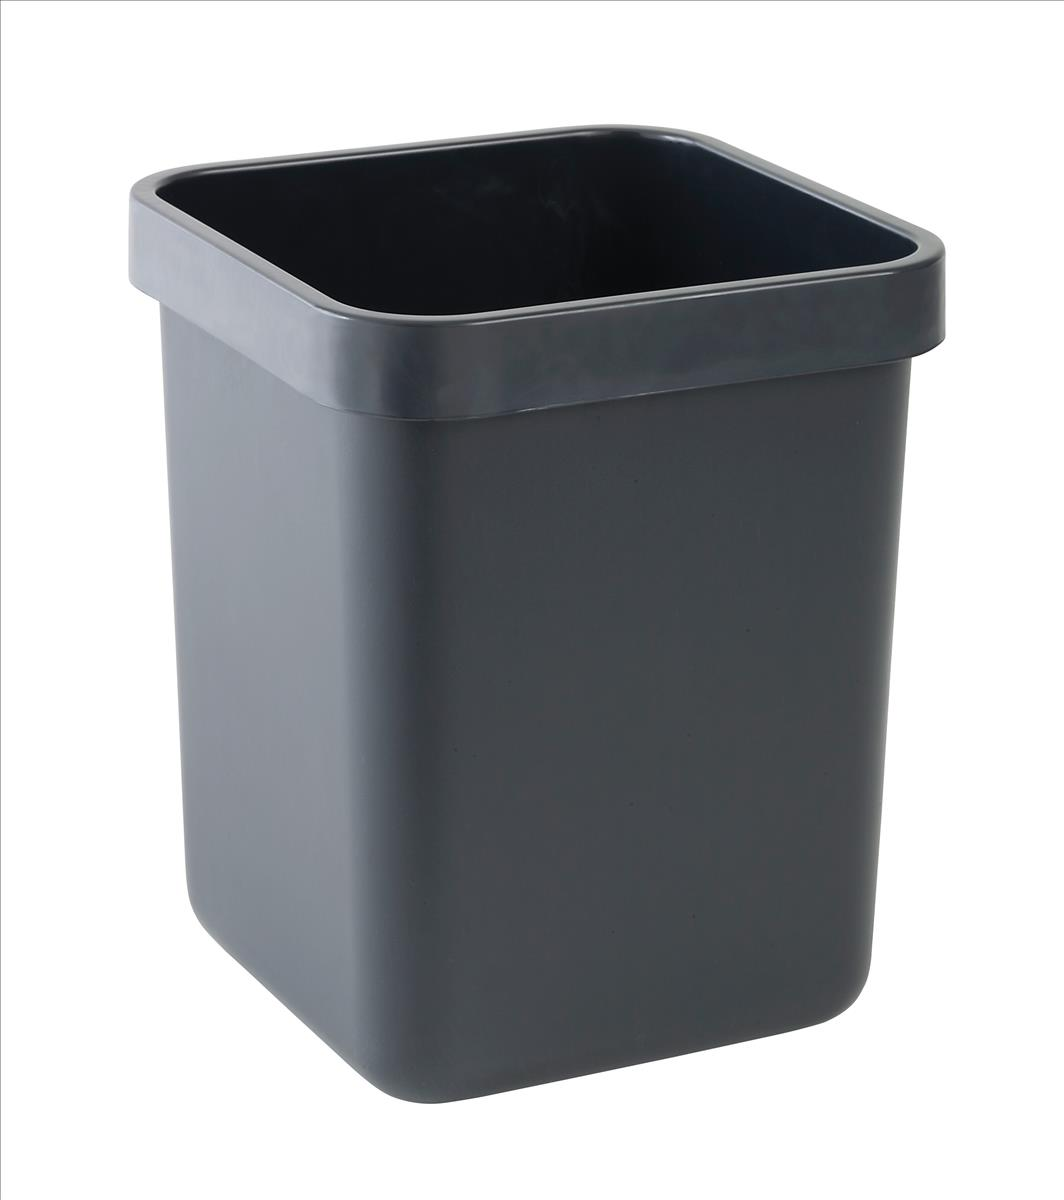 Image for Rexel Agenda Classic Waste Bin Rectangular W311xD311xH390mm 28 Litres Charcoal Ref 25671